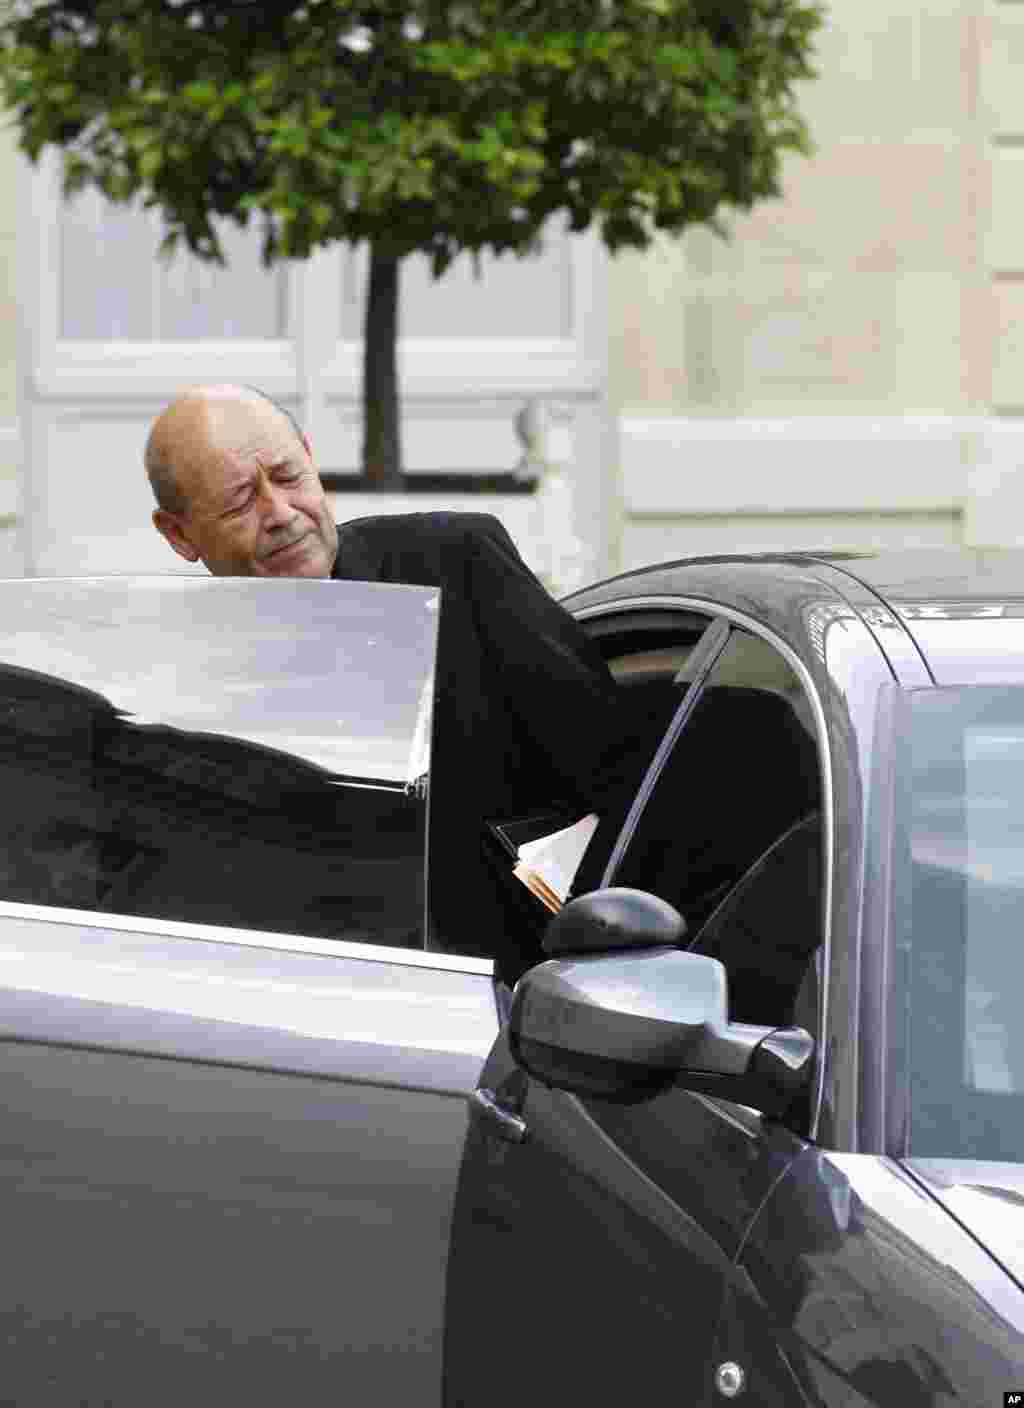 French Defense Minister Jean-Yves Le Drian gets into his car, as he leaves the Elysee Palace following a special defense meeting with French President Francois Hollande in Paris, Sept. 25, 2014.